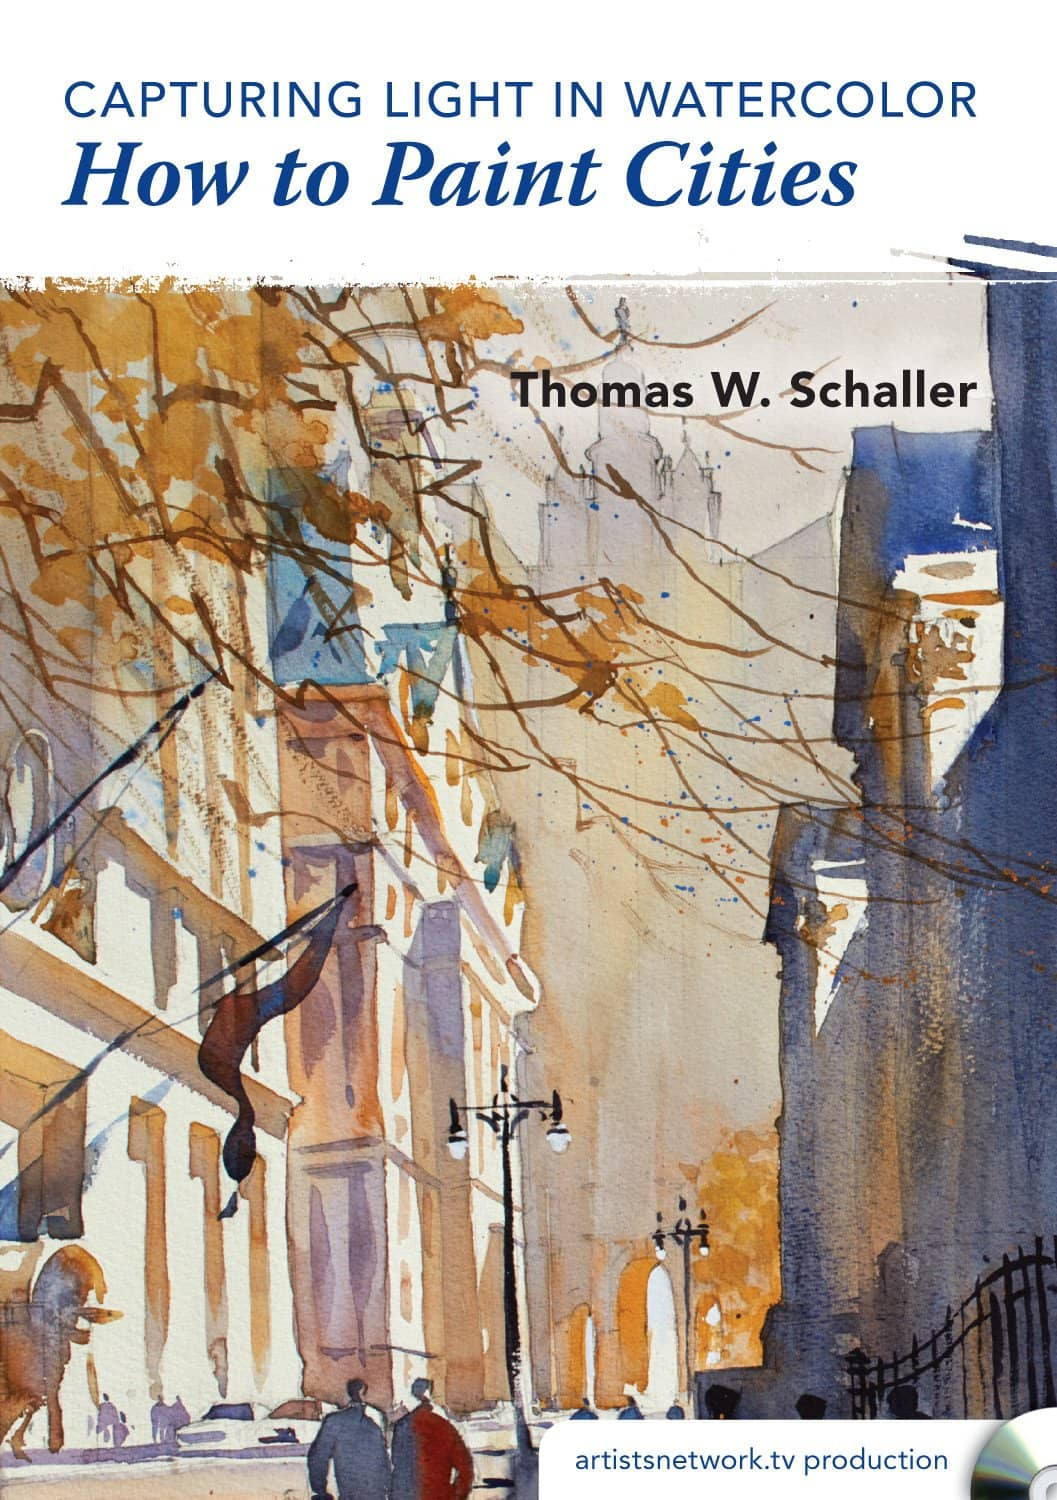 Capturing Light in Watercolor - How to Paint Cities with Thomas W Schaller